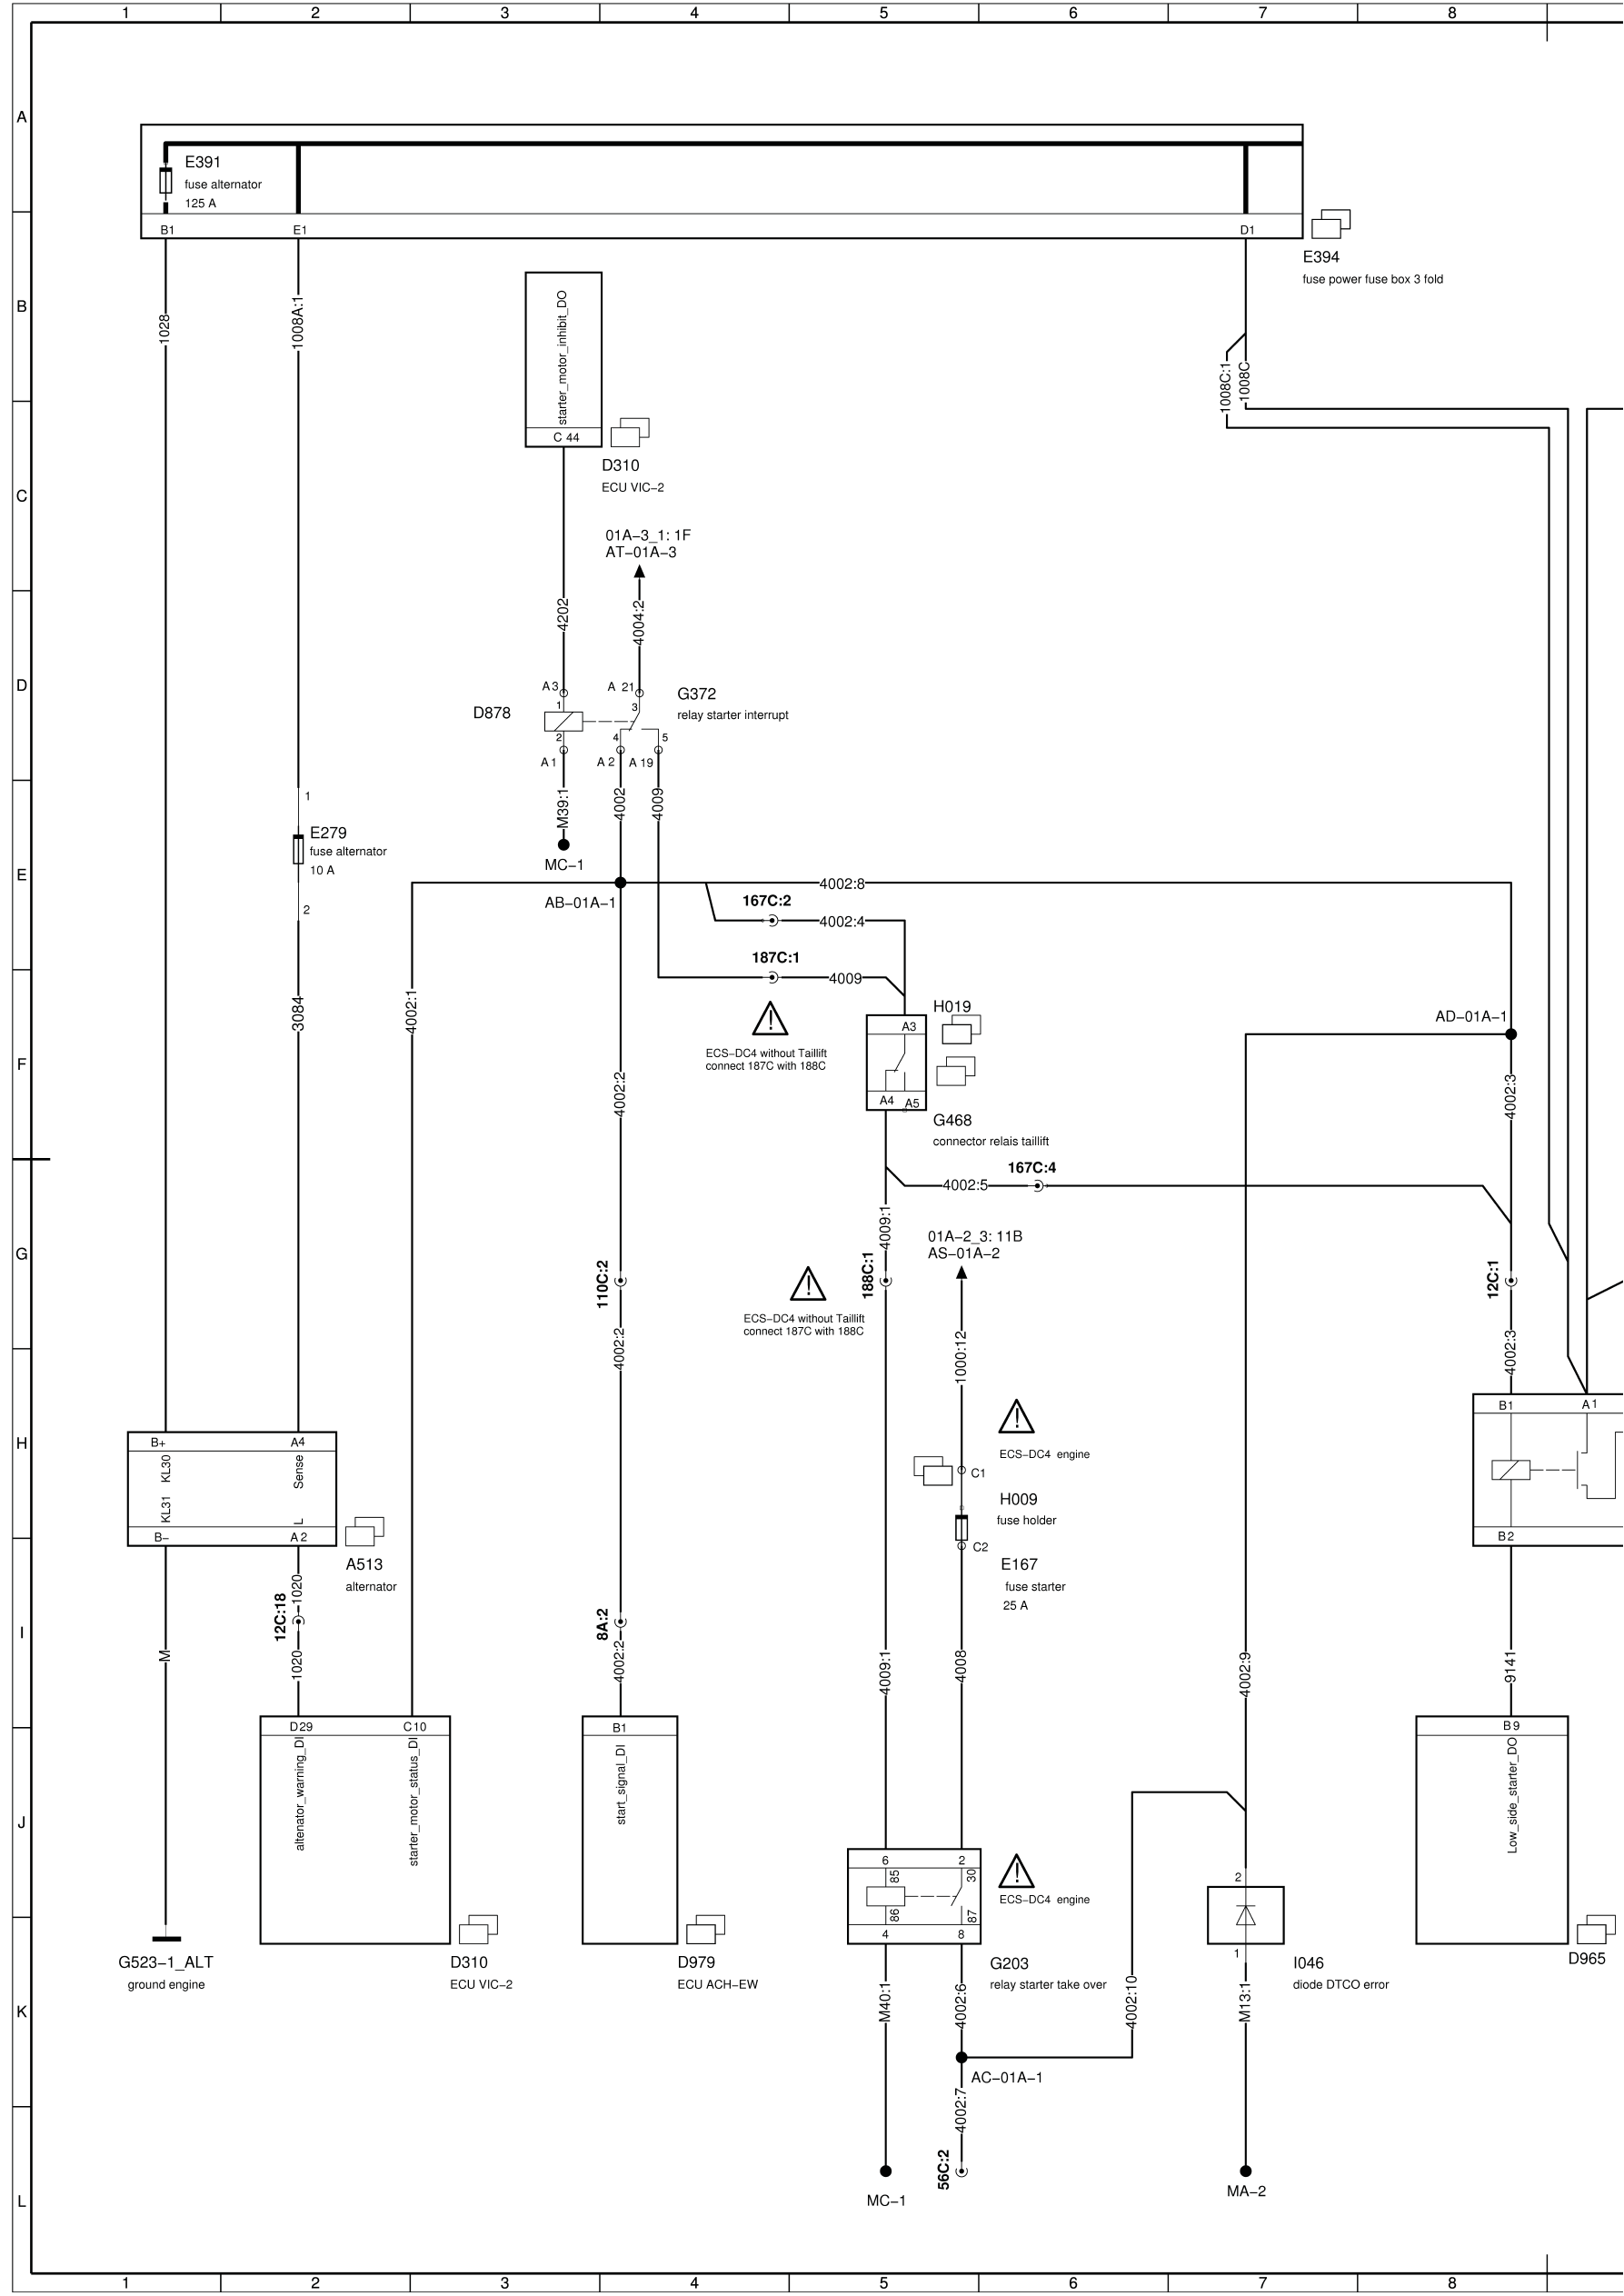 daf xf 105 wiring diagram schematics and wiring diagrams electrical wiring diagrams for dummies daf xf105 manual part 131